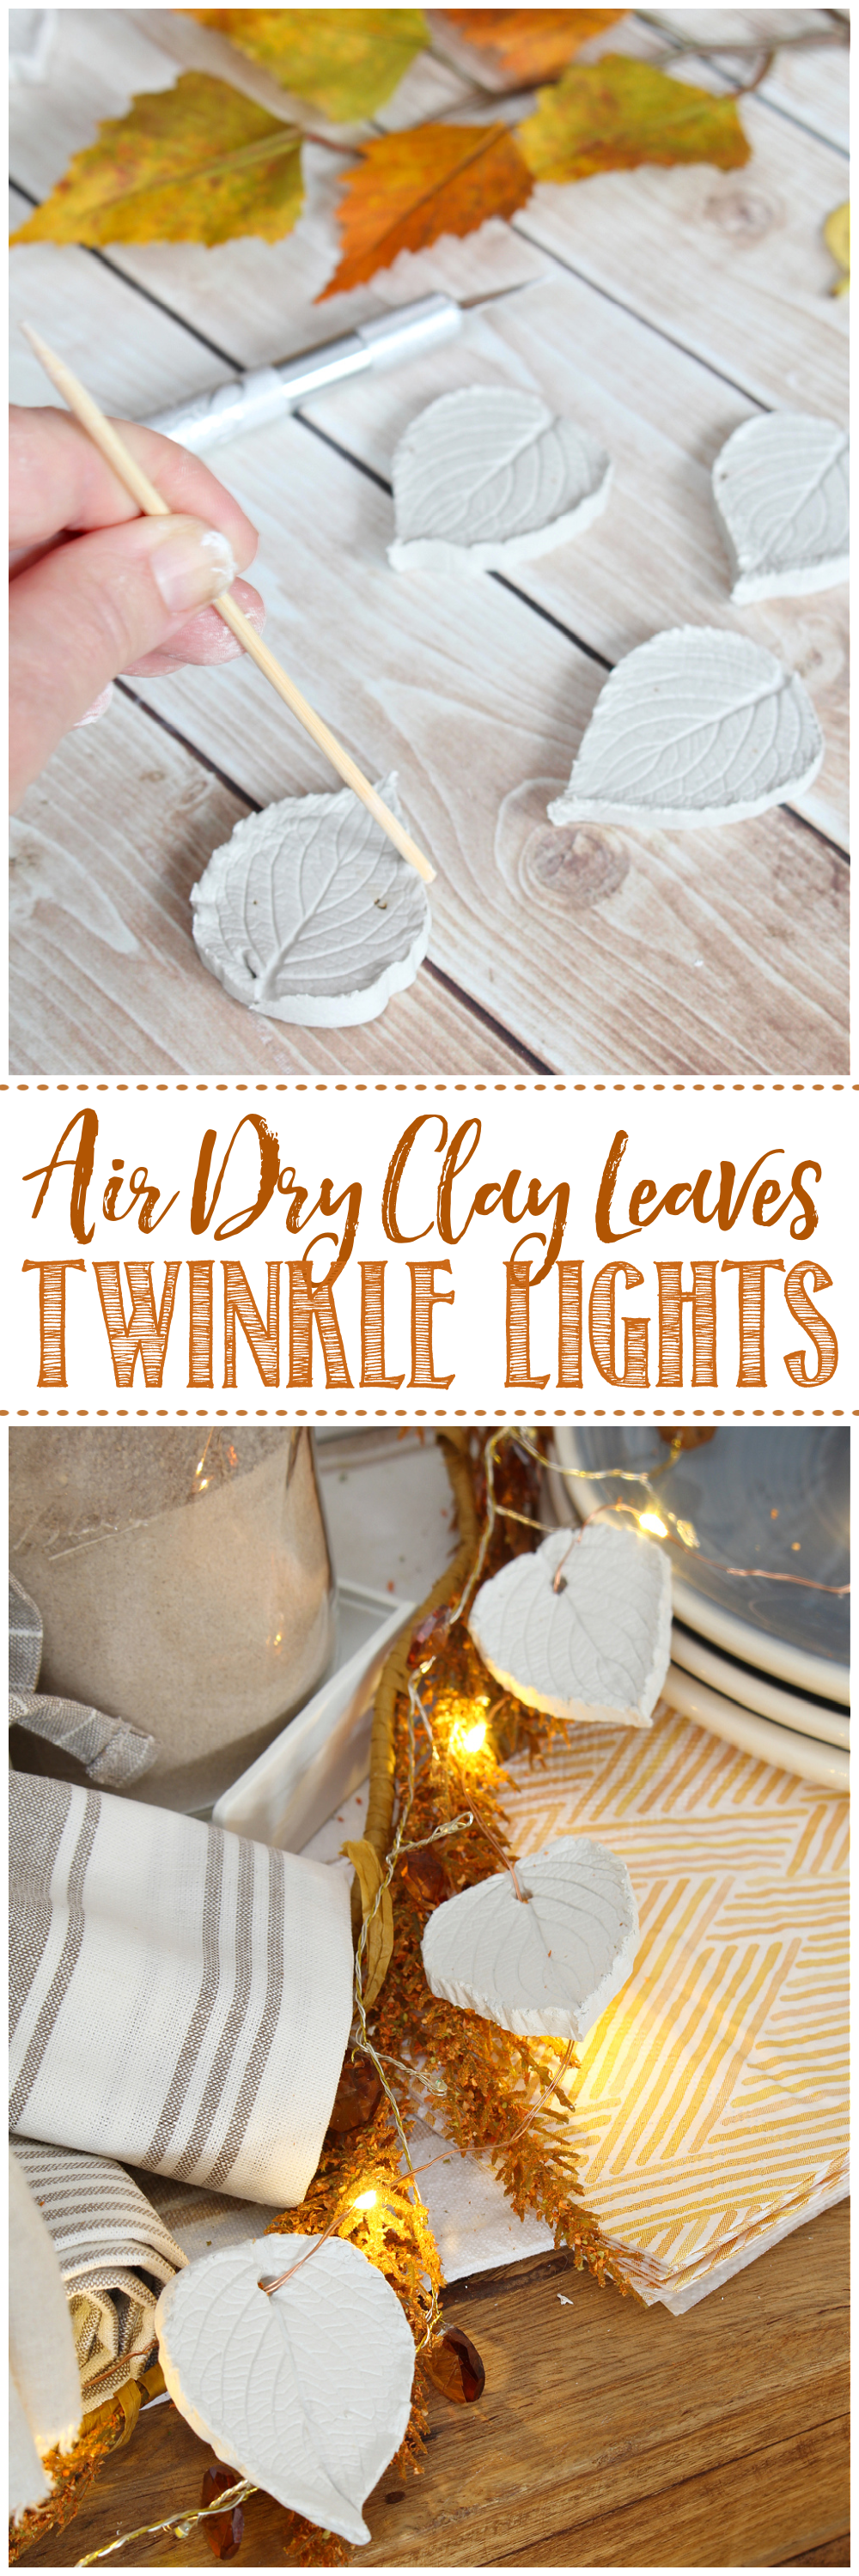 Air dry clay leaves used for pretty fall twinkle lights.